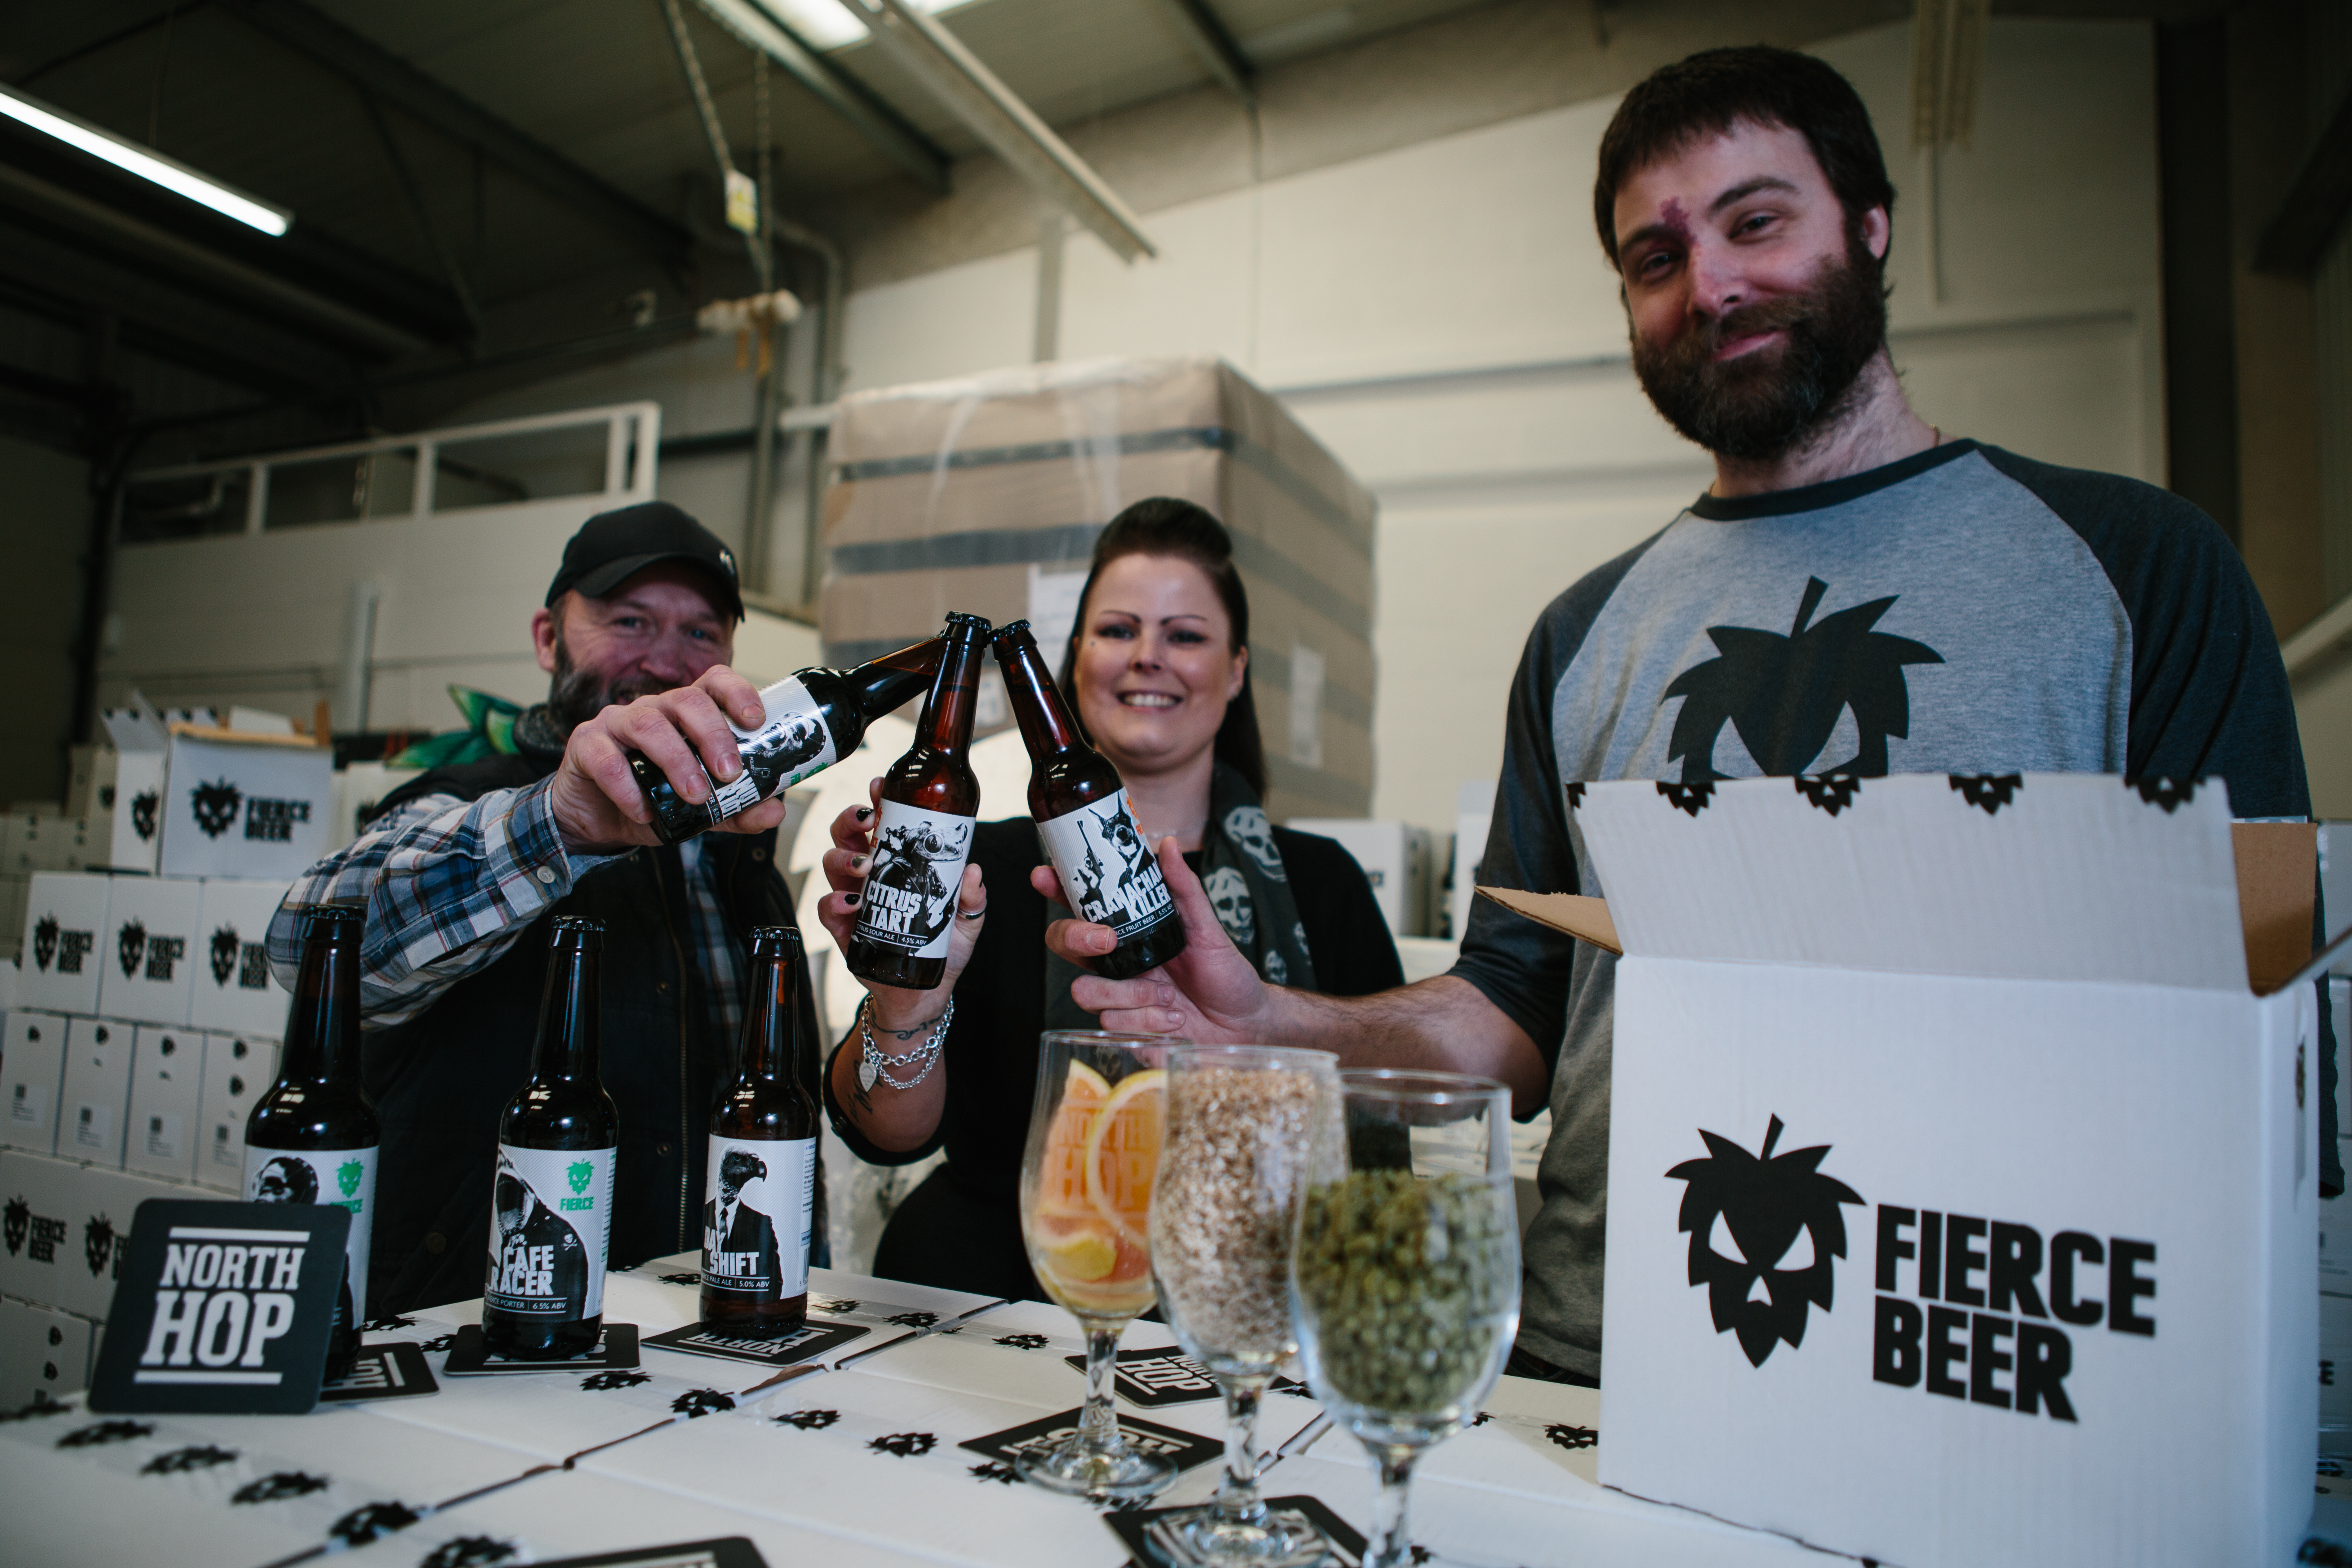 Media Release: North Hop to light up Aberdeen